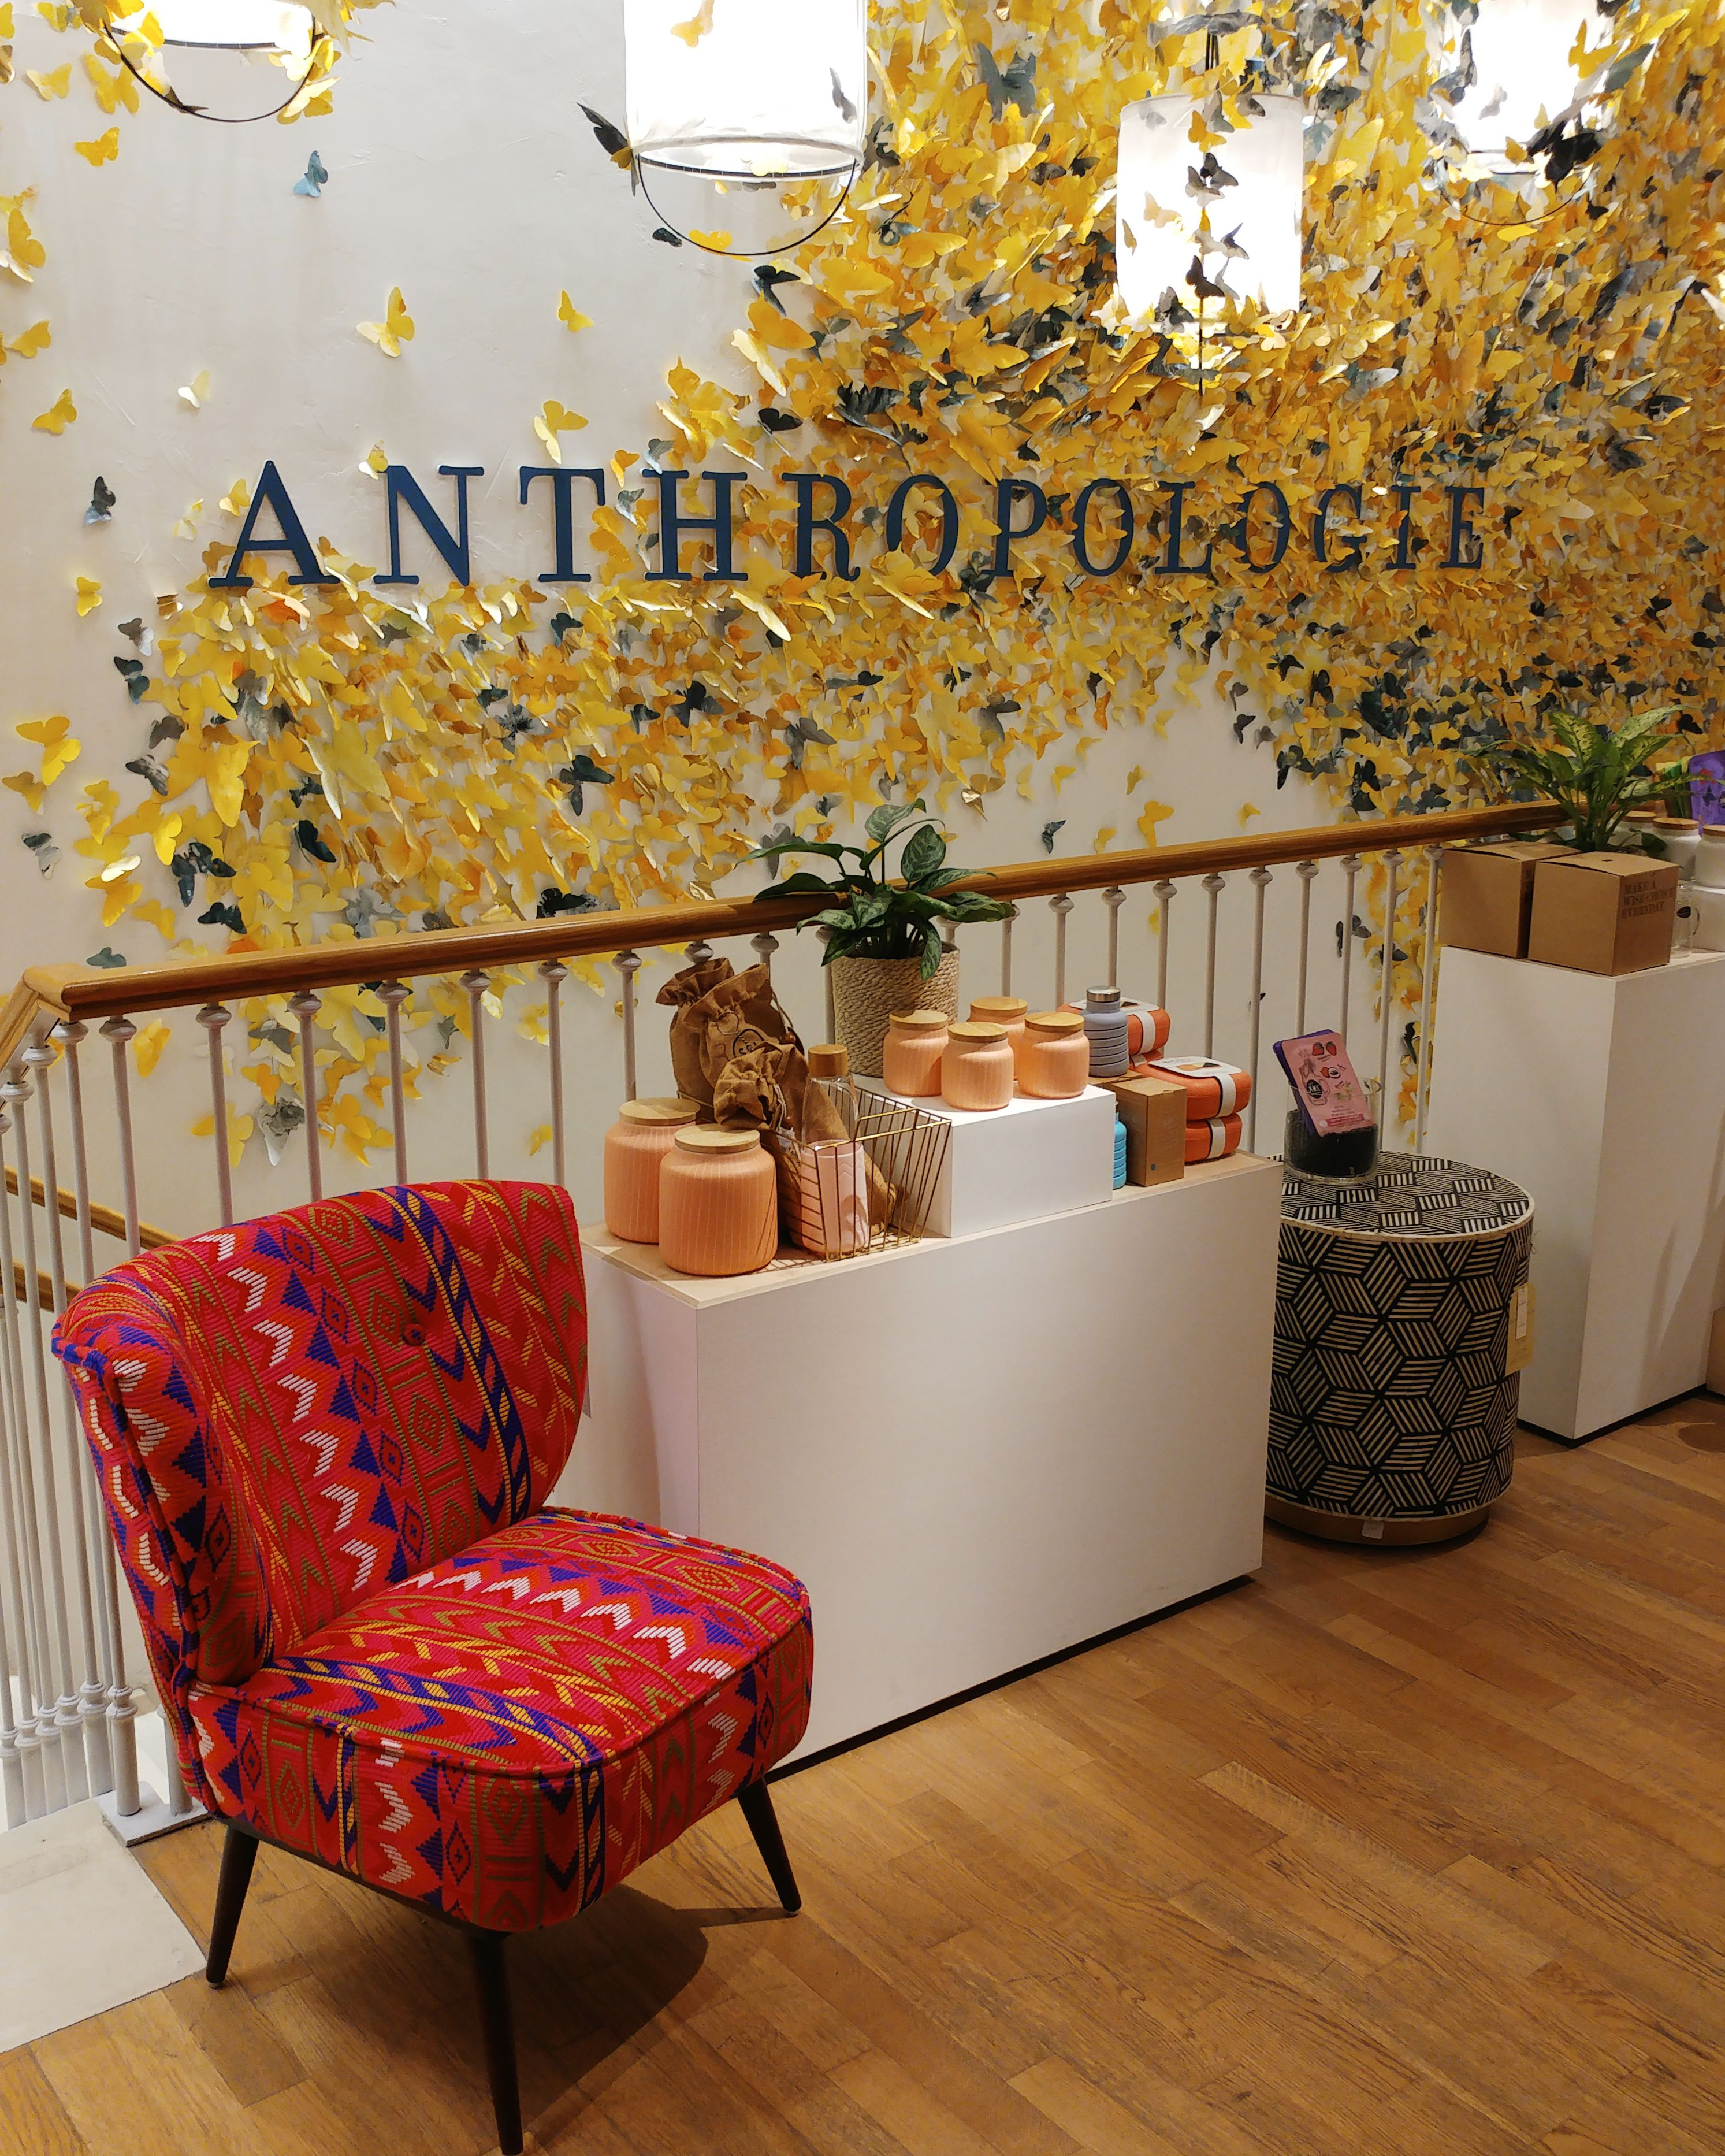 Anthropologie shop in Barcelona